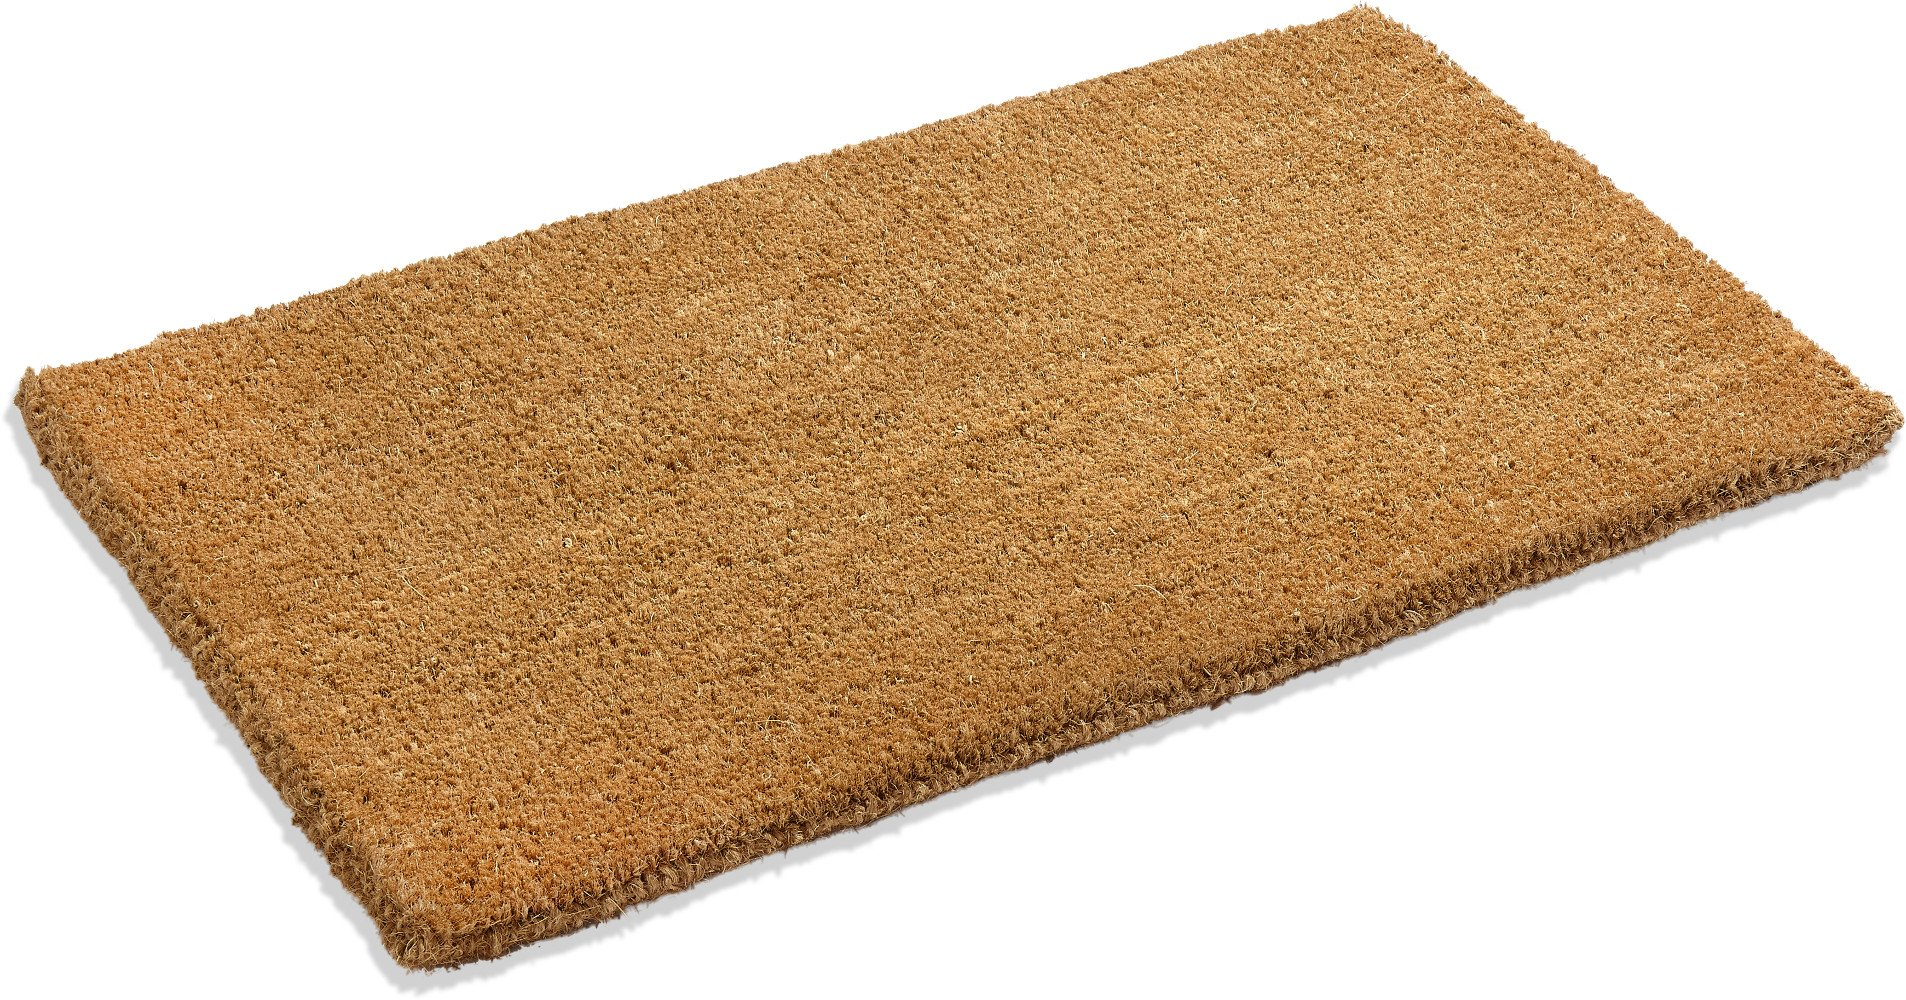 Kempf Natural Coco Coir Doormat, 36-inch by 72-inch, 1'' Thick Low Clearance